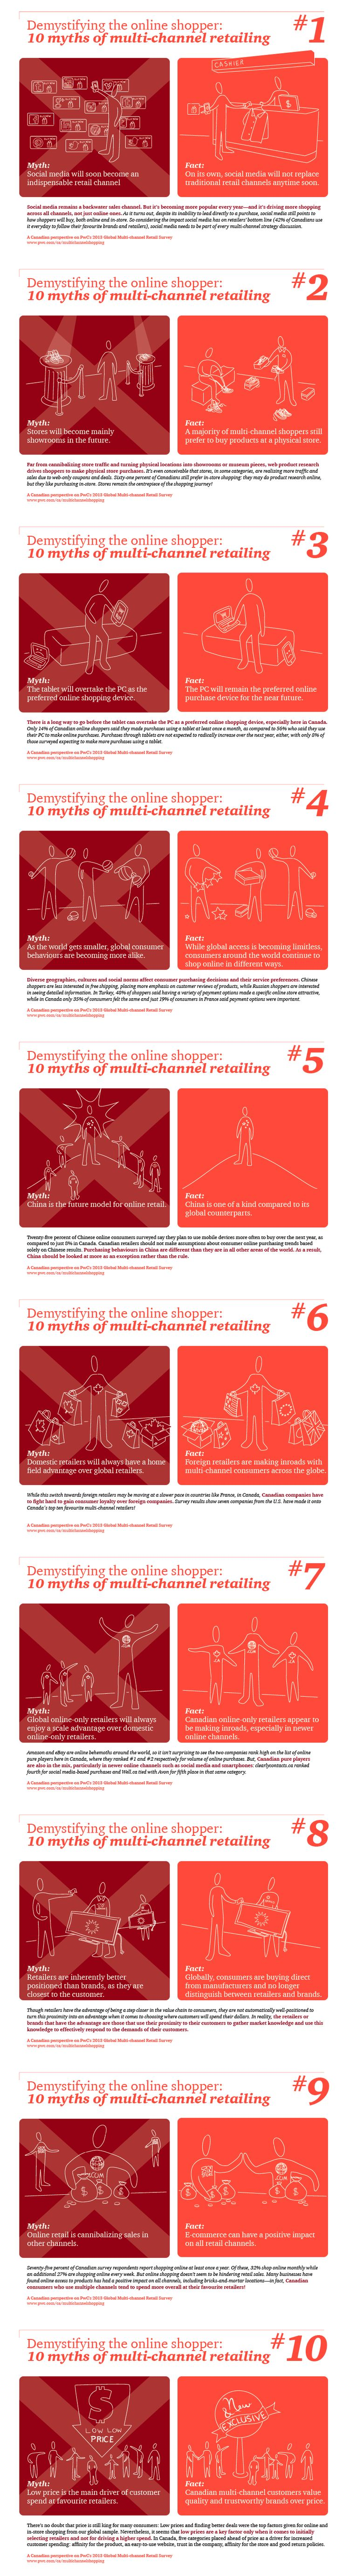 10 Myths of multi-channel retailing #pwc #multichannel #ecommerce